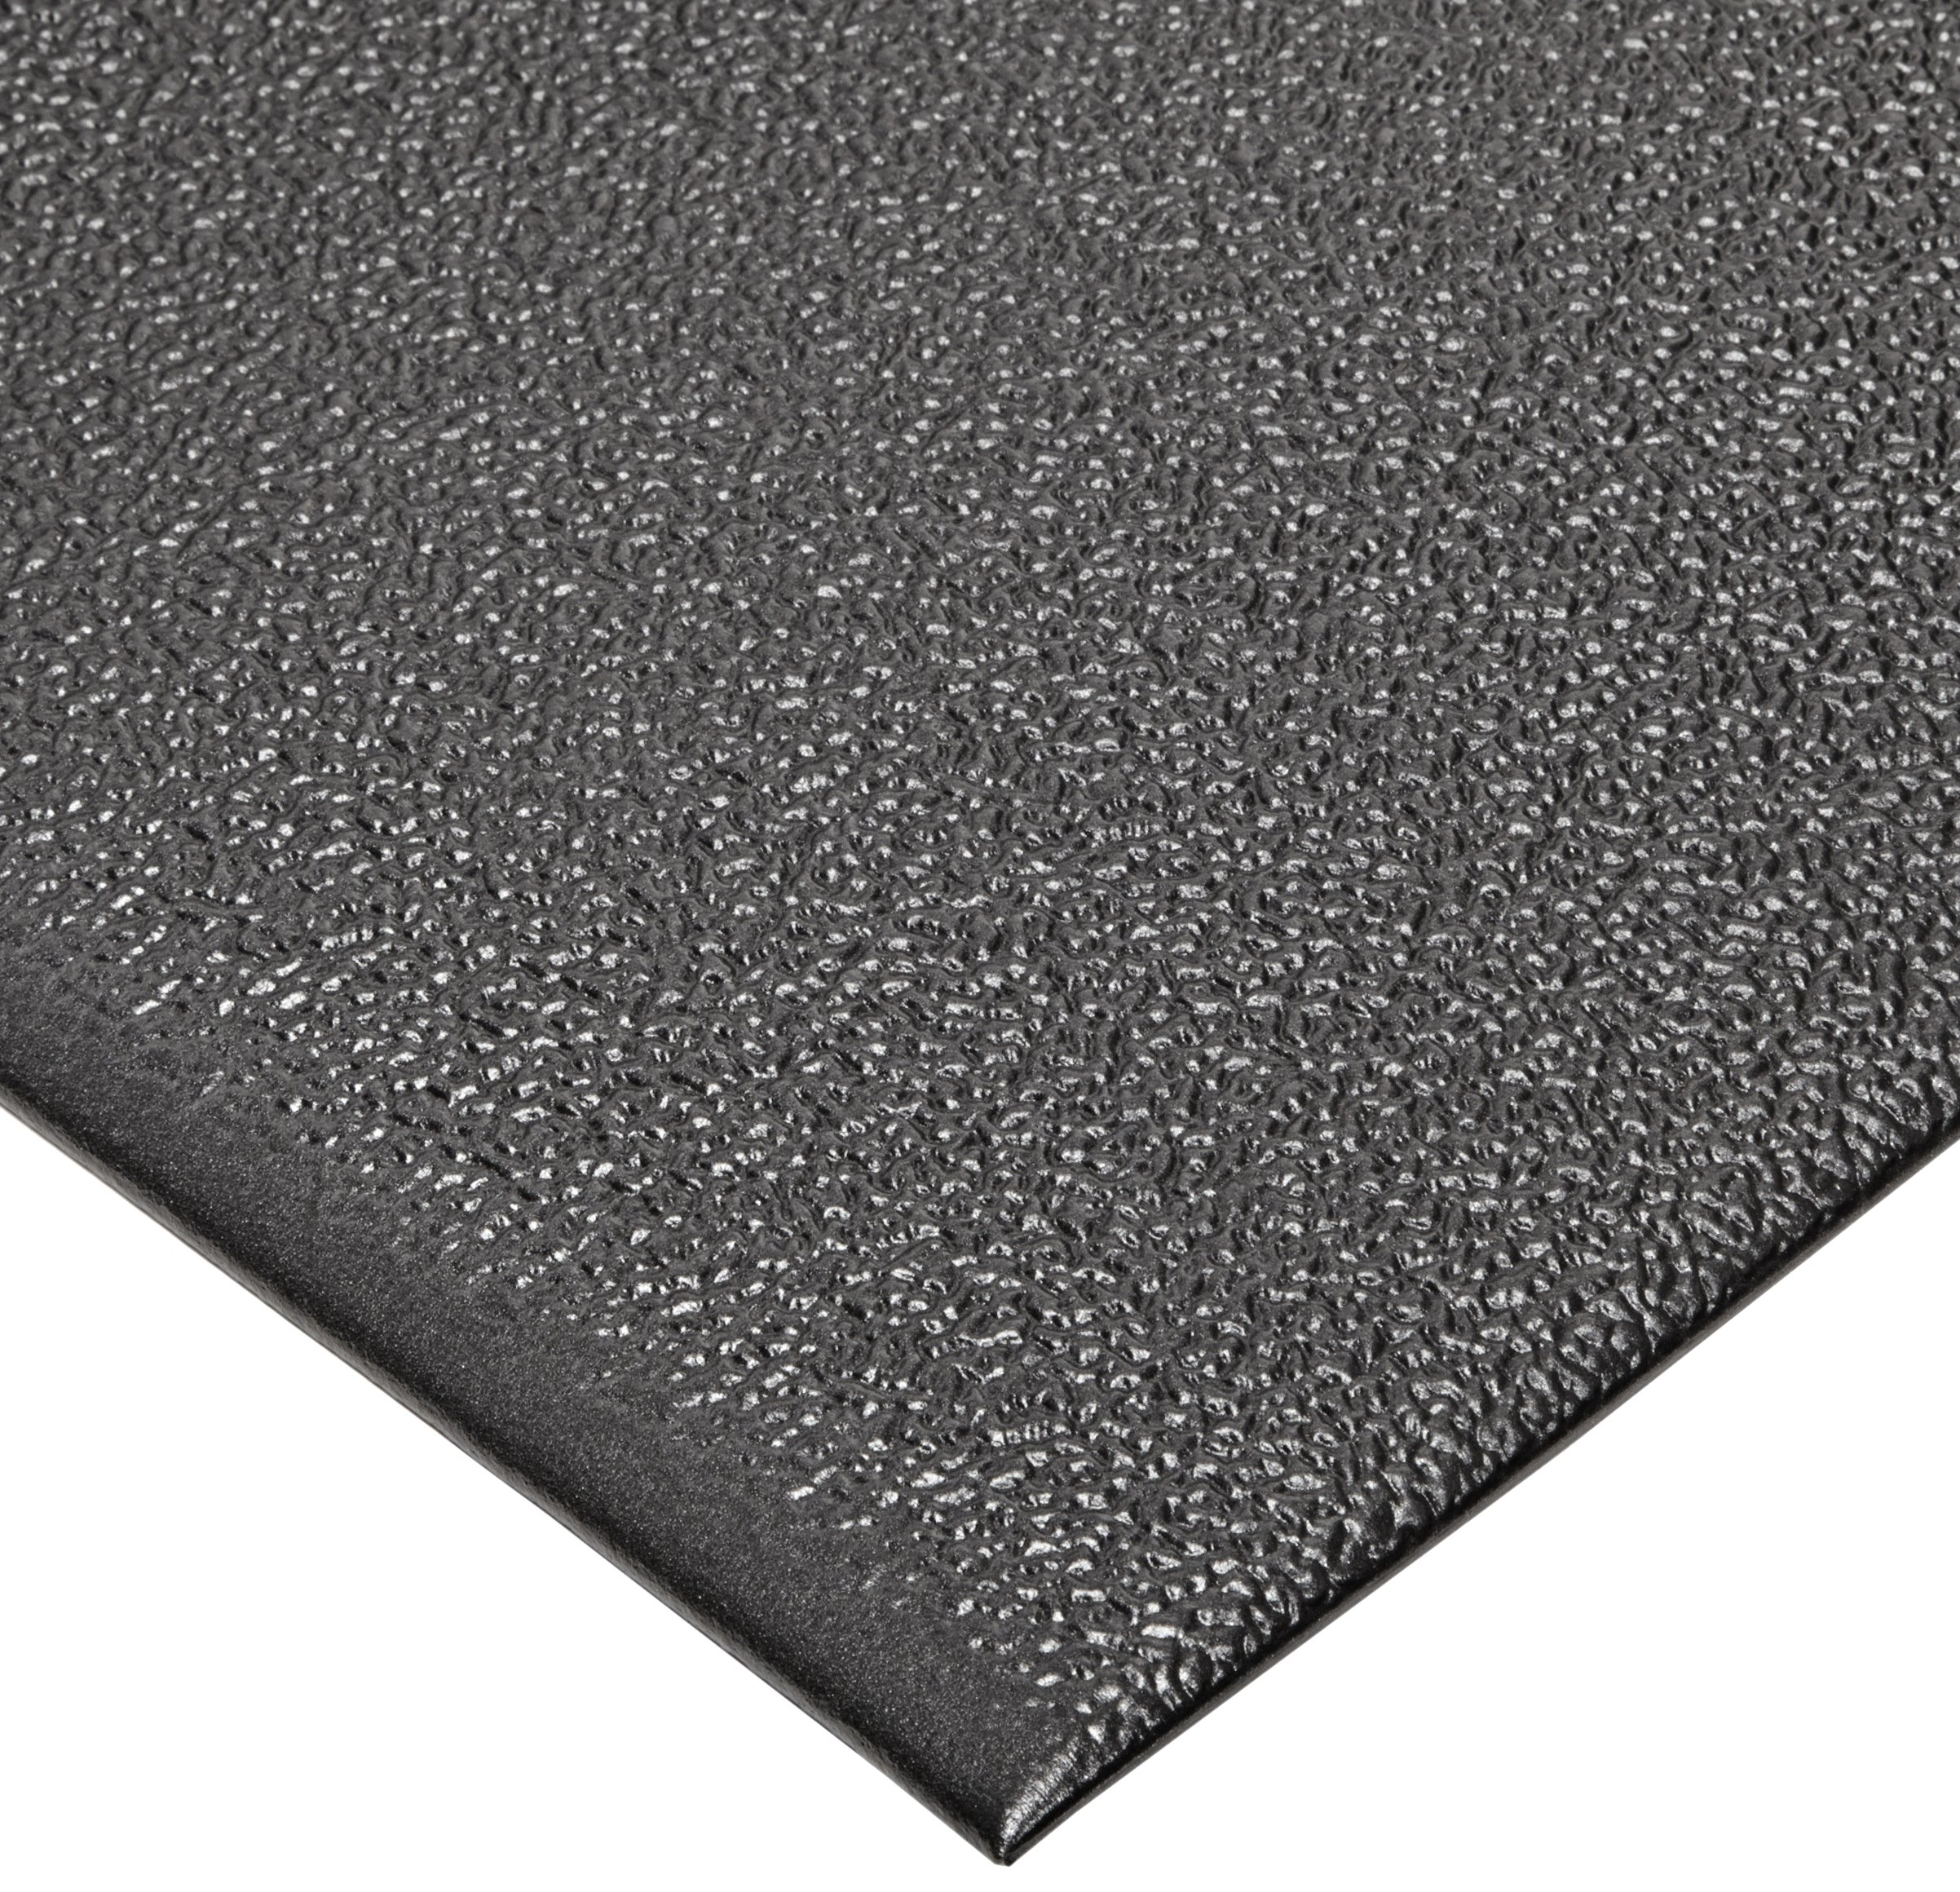 NoTrax T41 Heavy Duty PVC Safety/Anti-Fatigue Comfort Rest Pebble Foam, For Dry Areas, 2' Width x 5' Length x 9/16'' Thickness, Coal